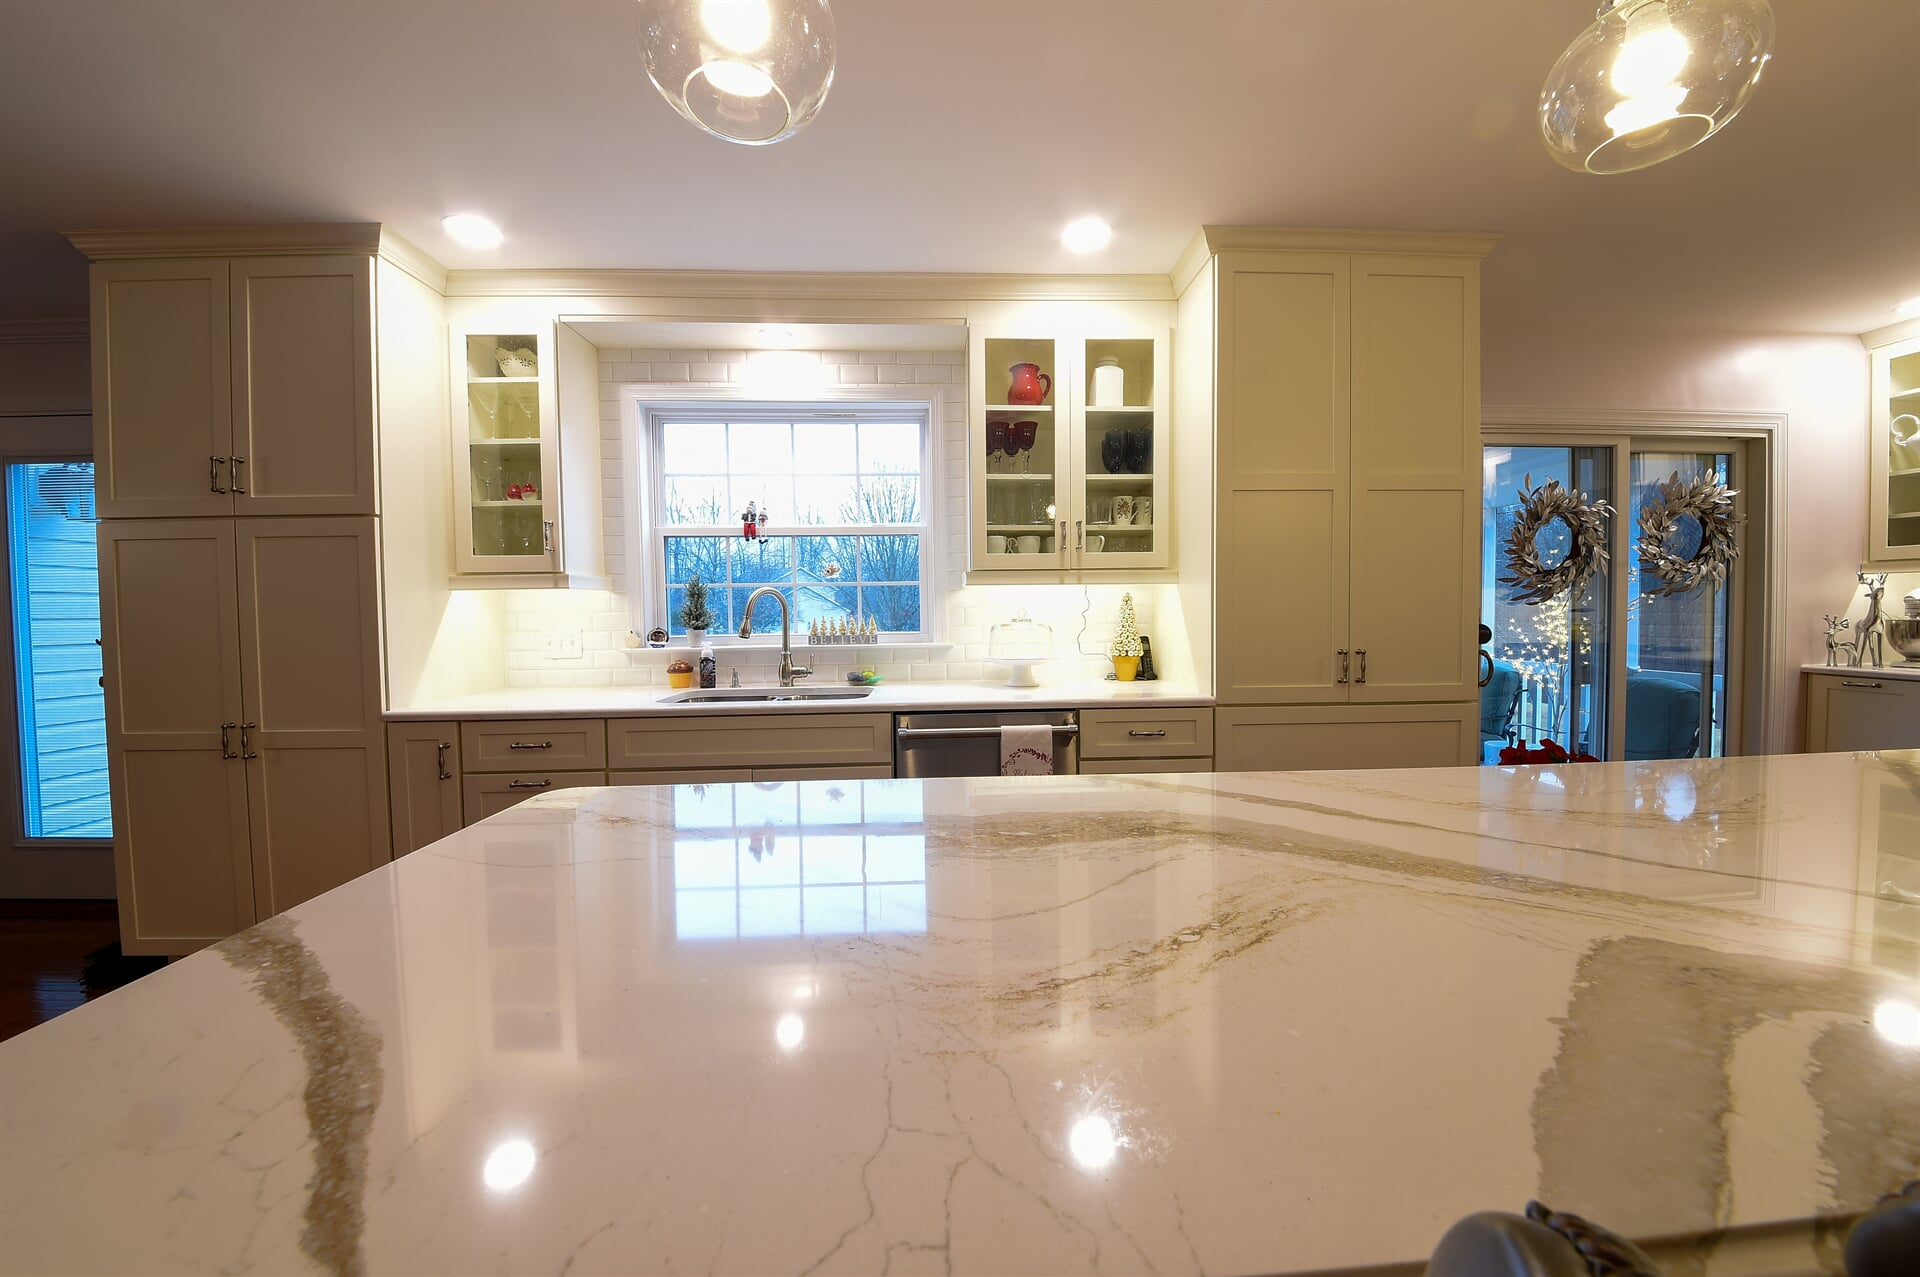 Kitchen remodeling in Owings, MD by Southern Maryland Kitchen Bath Floors & Design